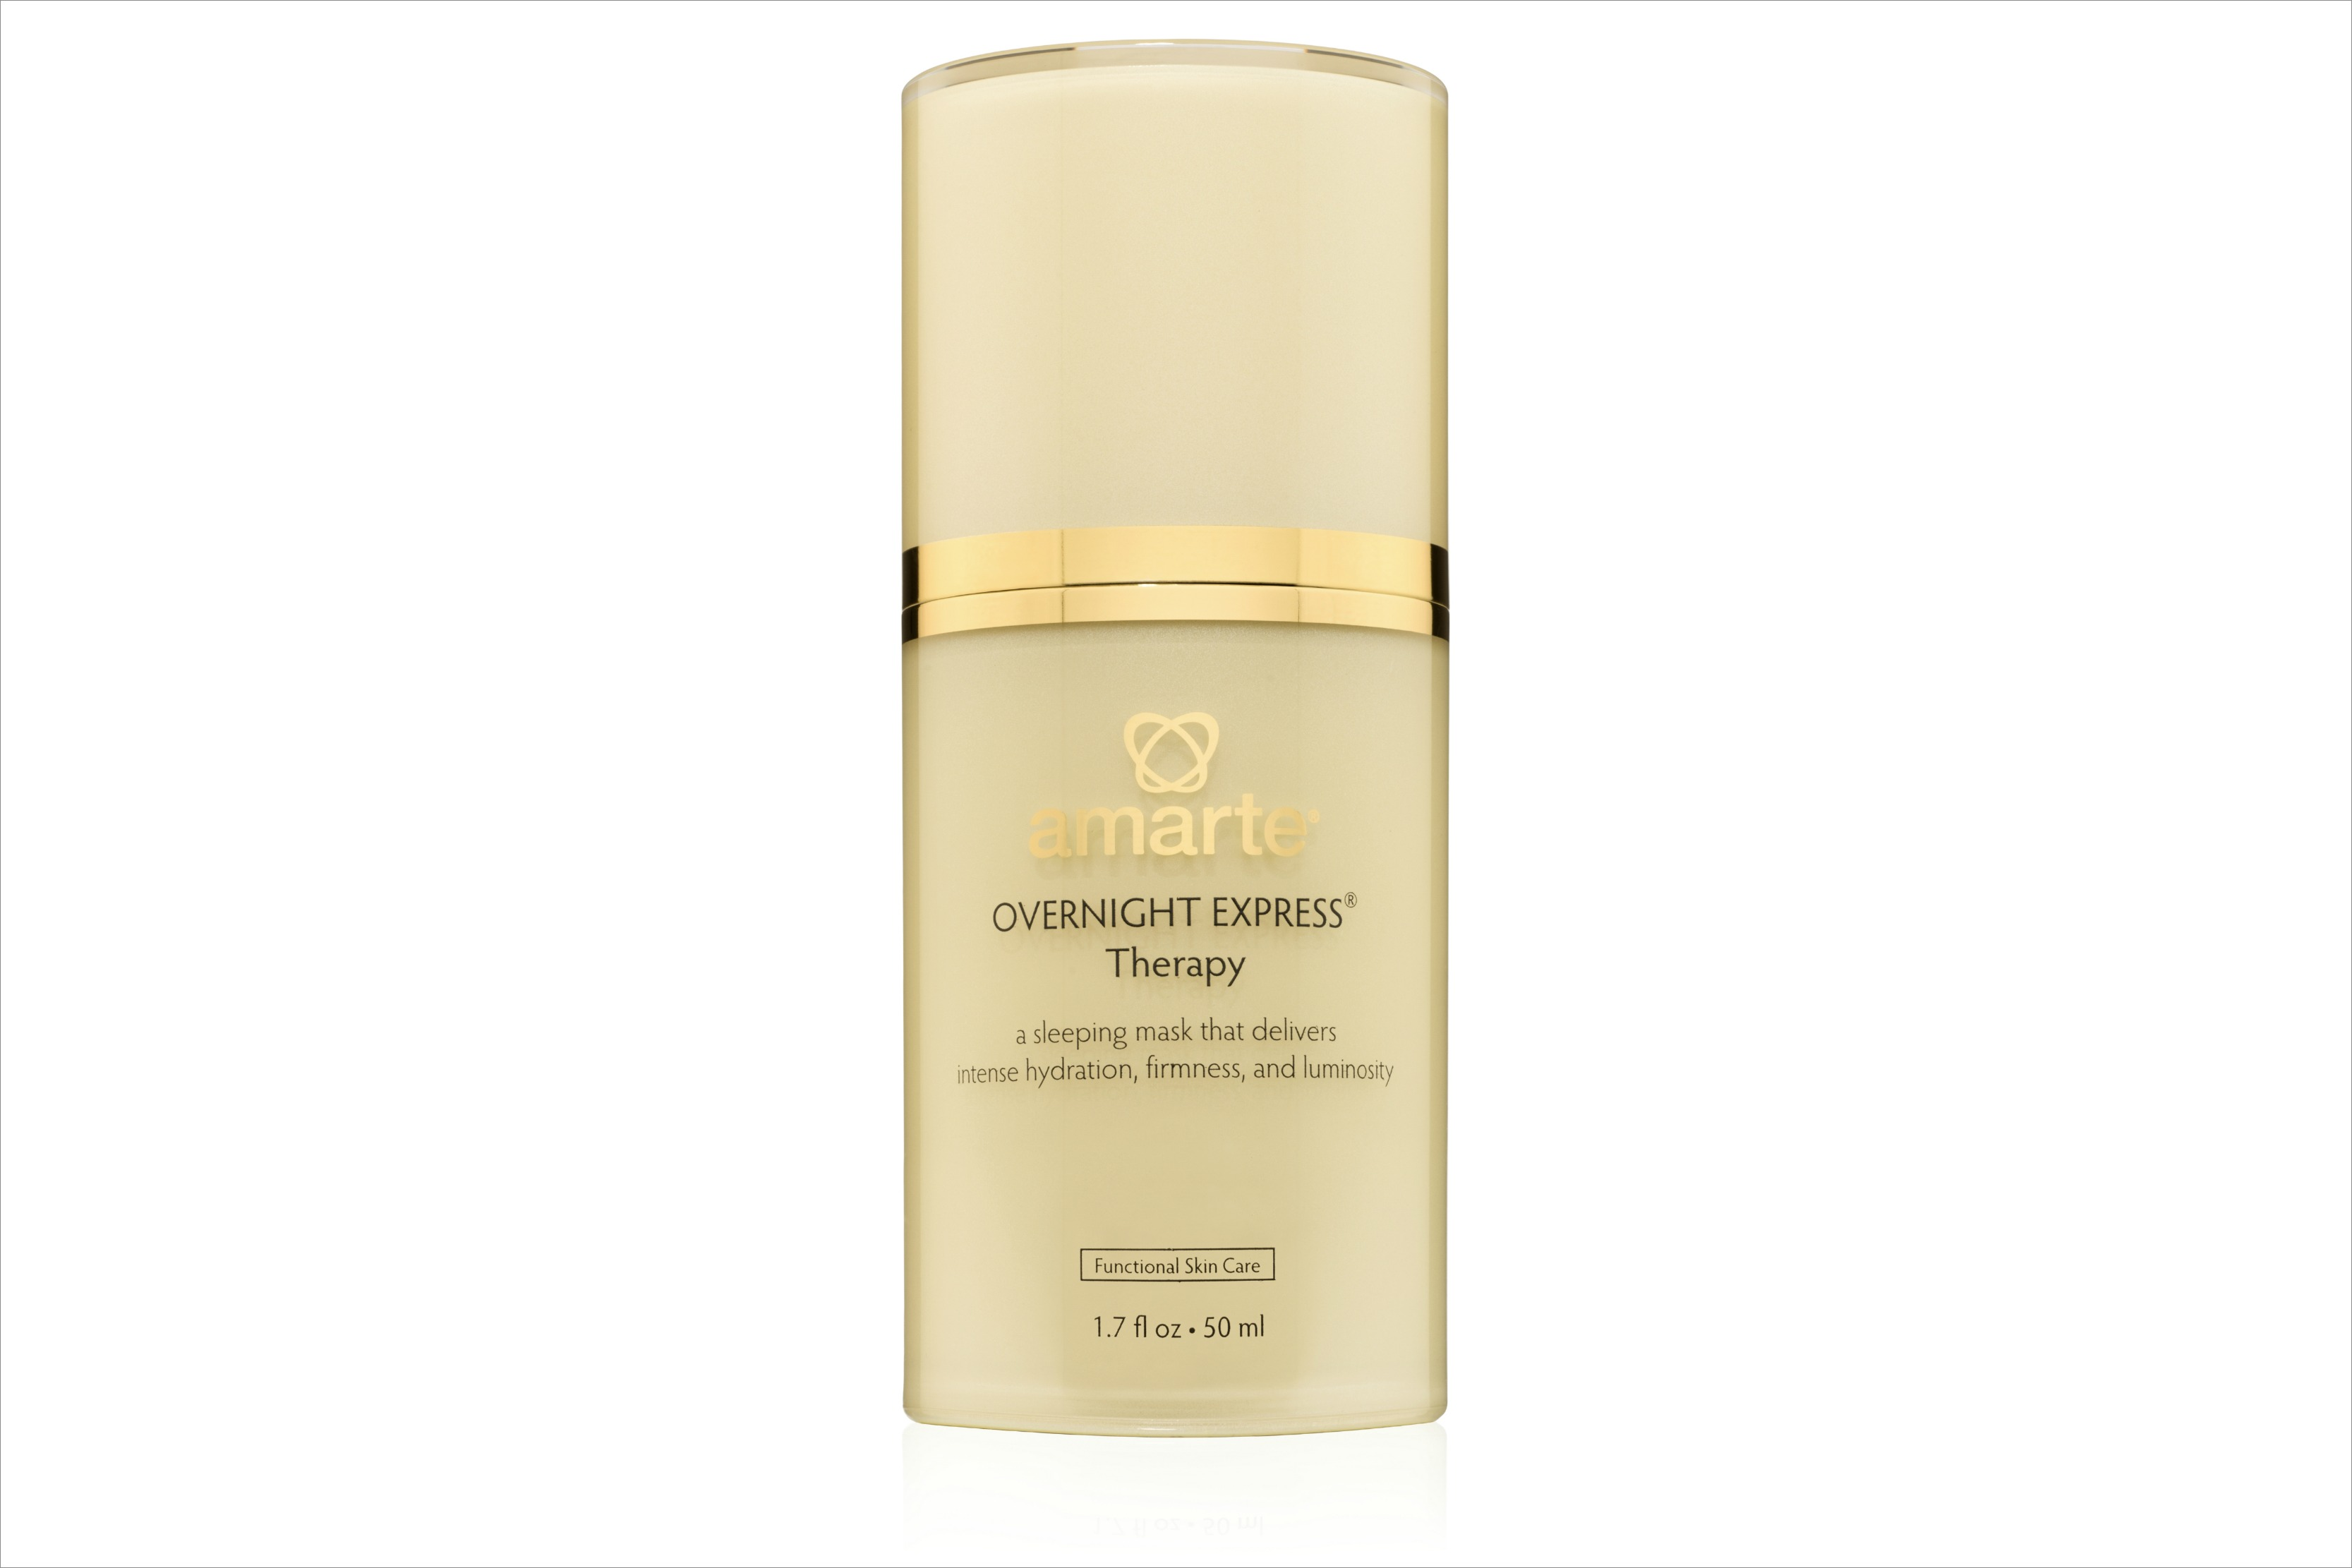 Amarte Overnight Express Therapy multi-functional sleeping mask with retinol